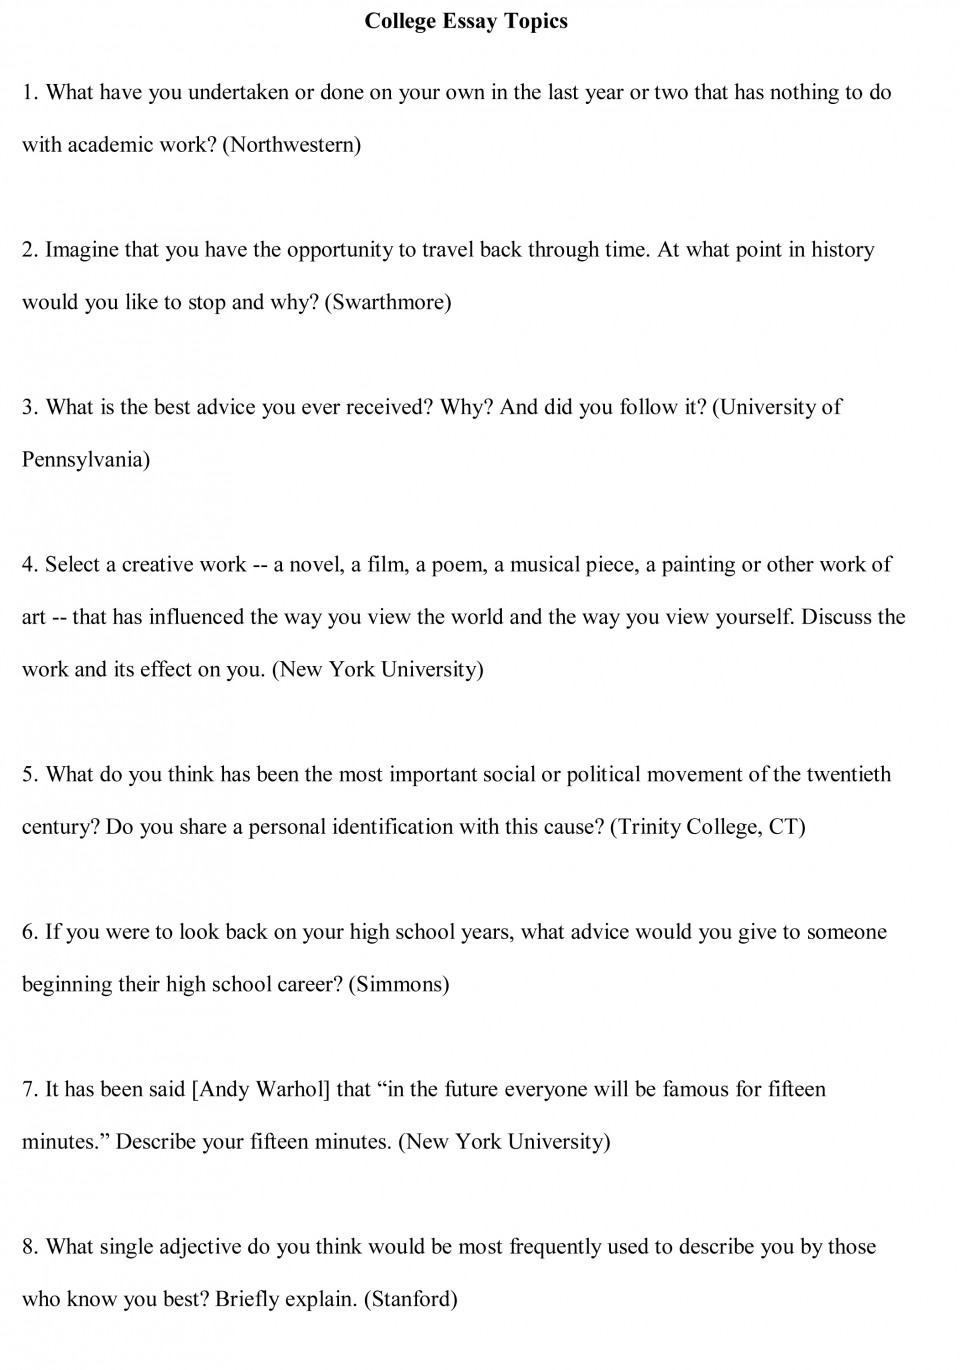 018 Essay Example College Topics Free Sample1 Wonderful Persuasive Argumentative Students Easy Level Speech 2018 960